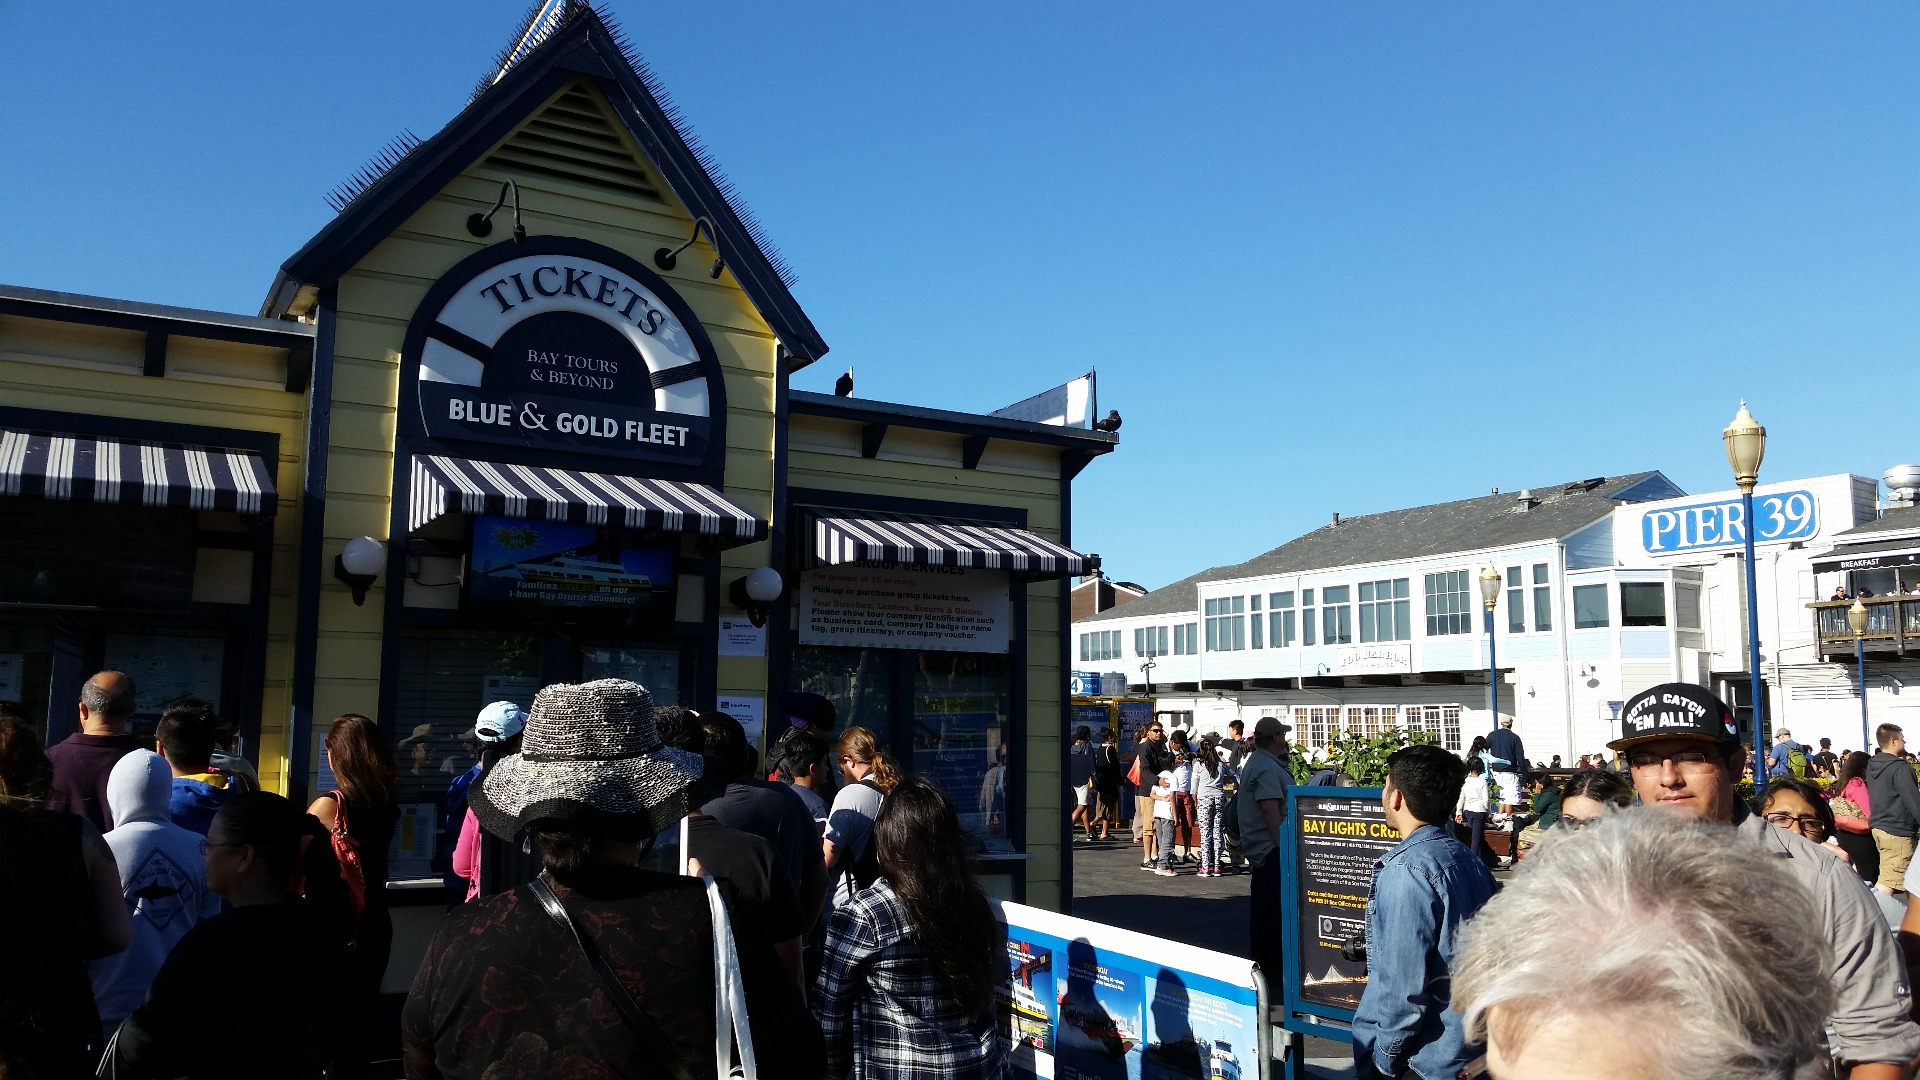 The ticket booth, near Pier 39 is close to the boarding area for the ferry, in the back of Pier 41. Just a 2 to 3 minutes walking distance.